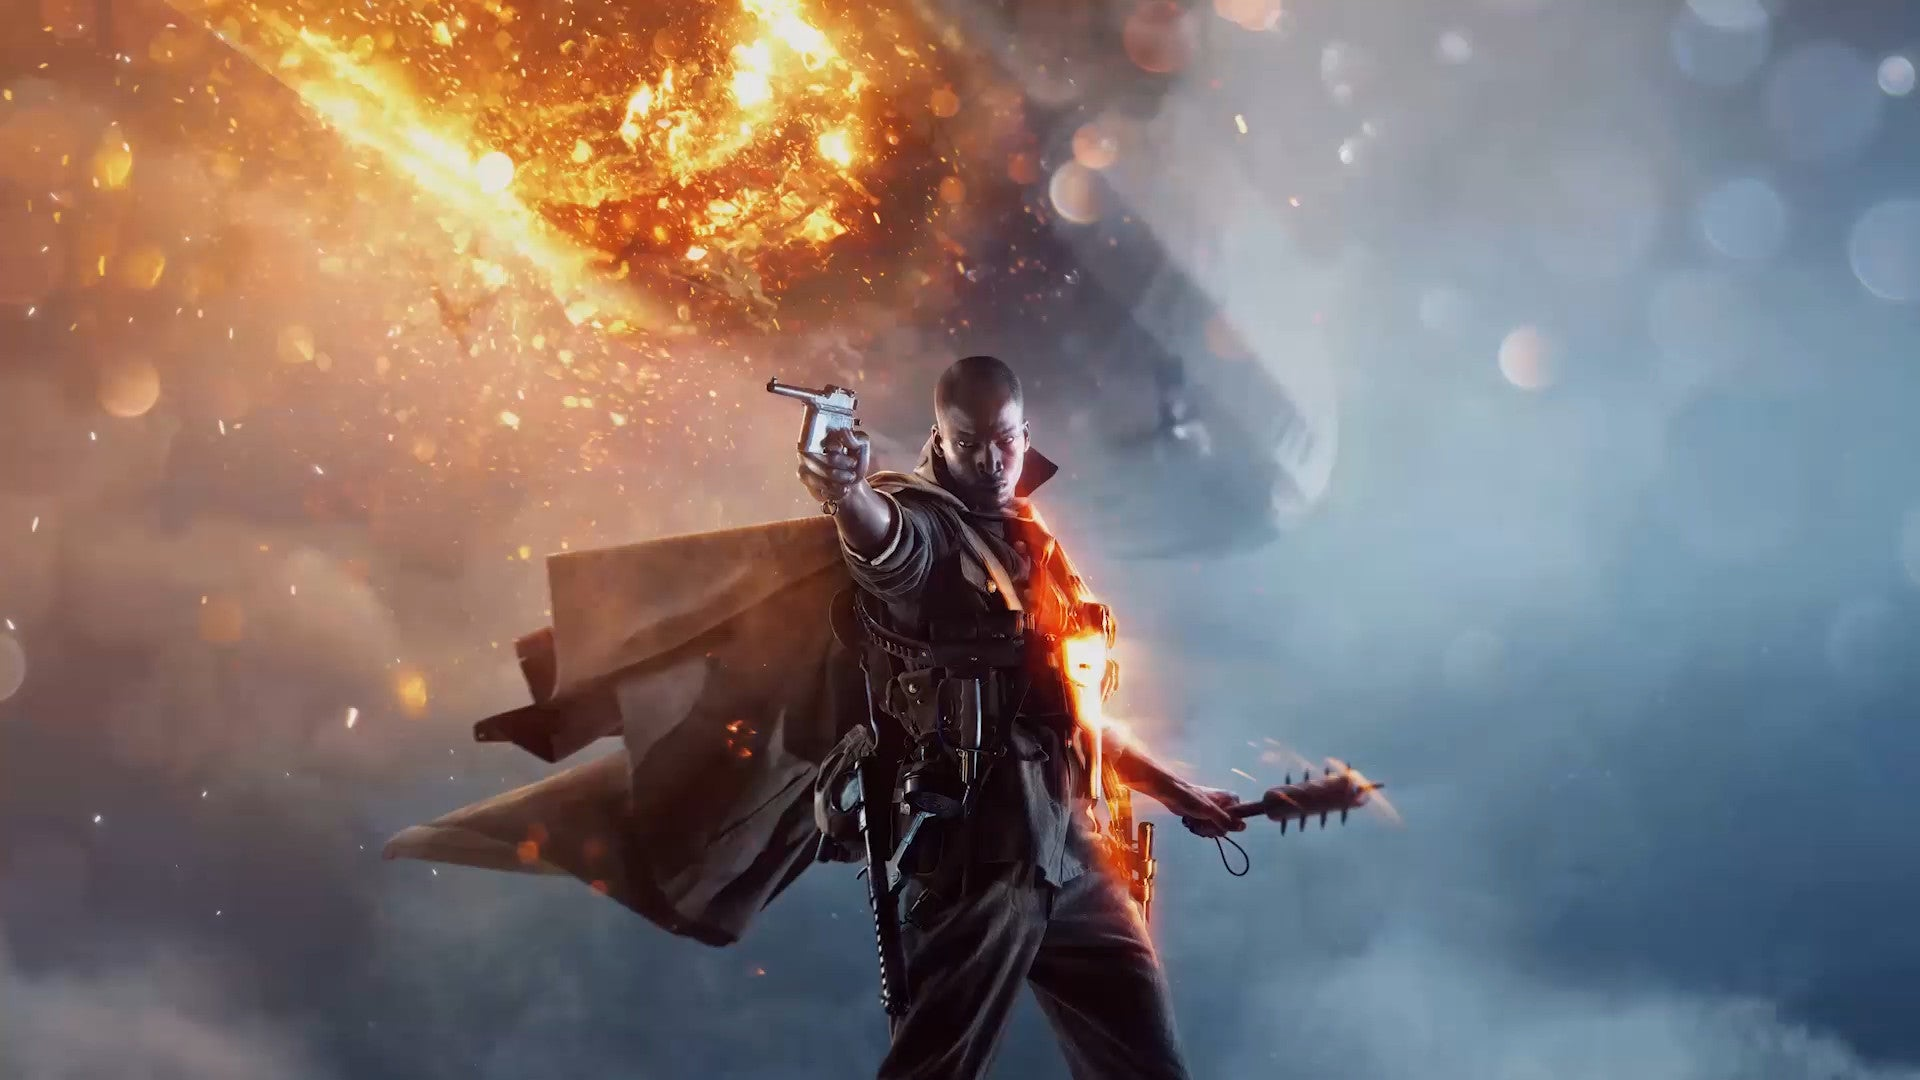 battlefield battlefield-1 dice ea kotaku-core playstation-4 tips tag-xbox xbox-one